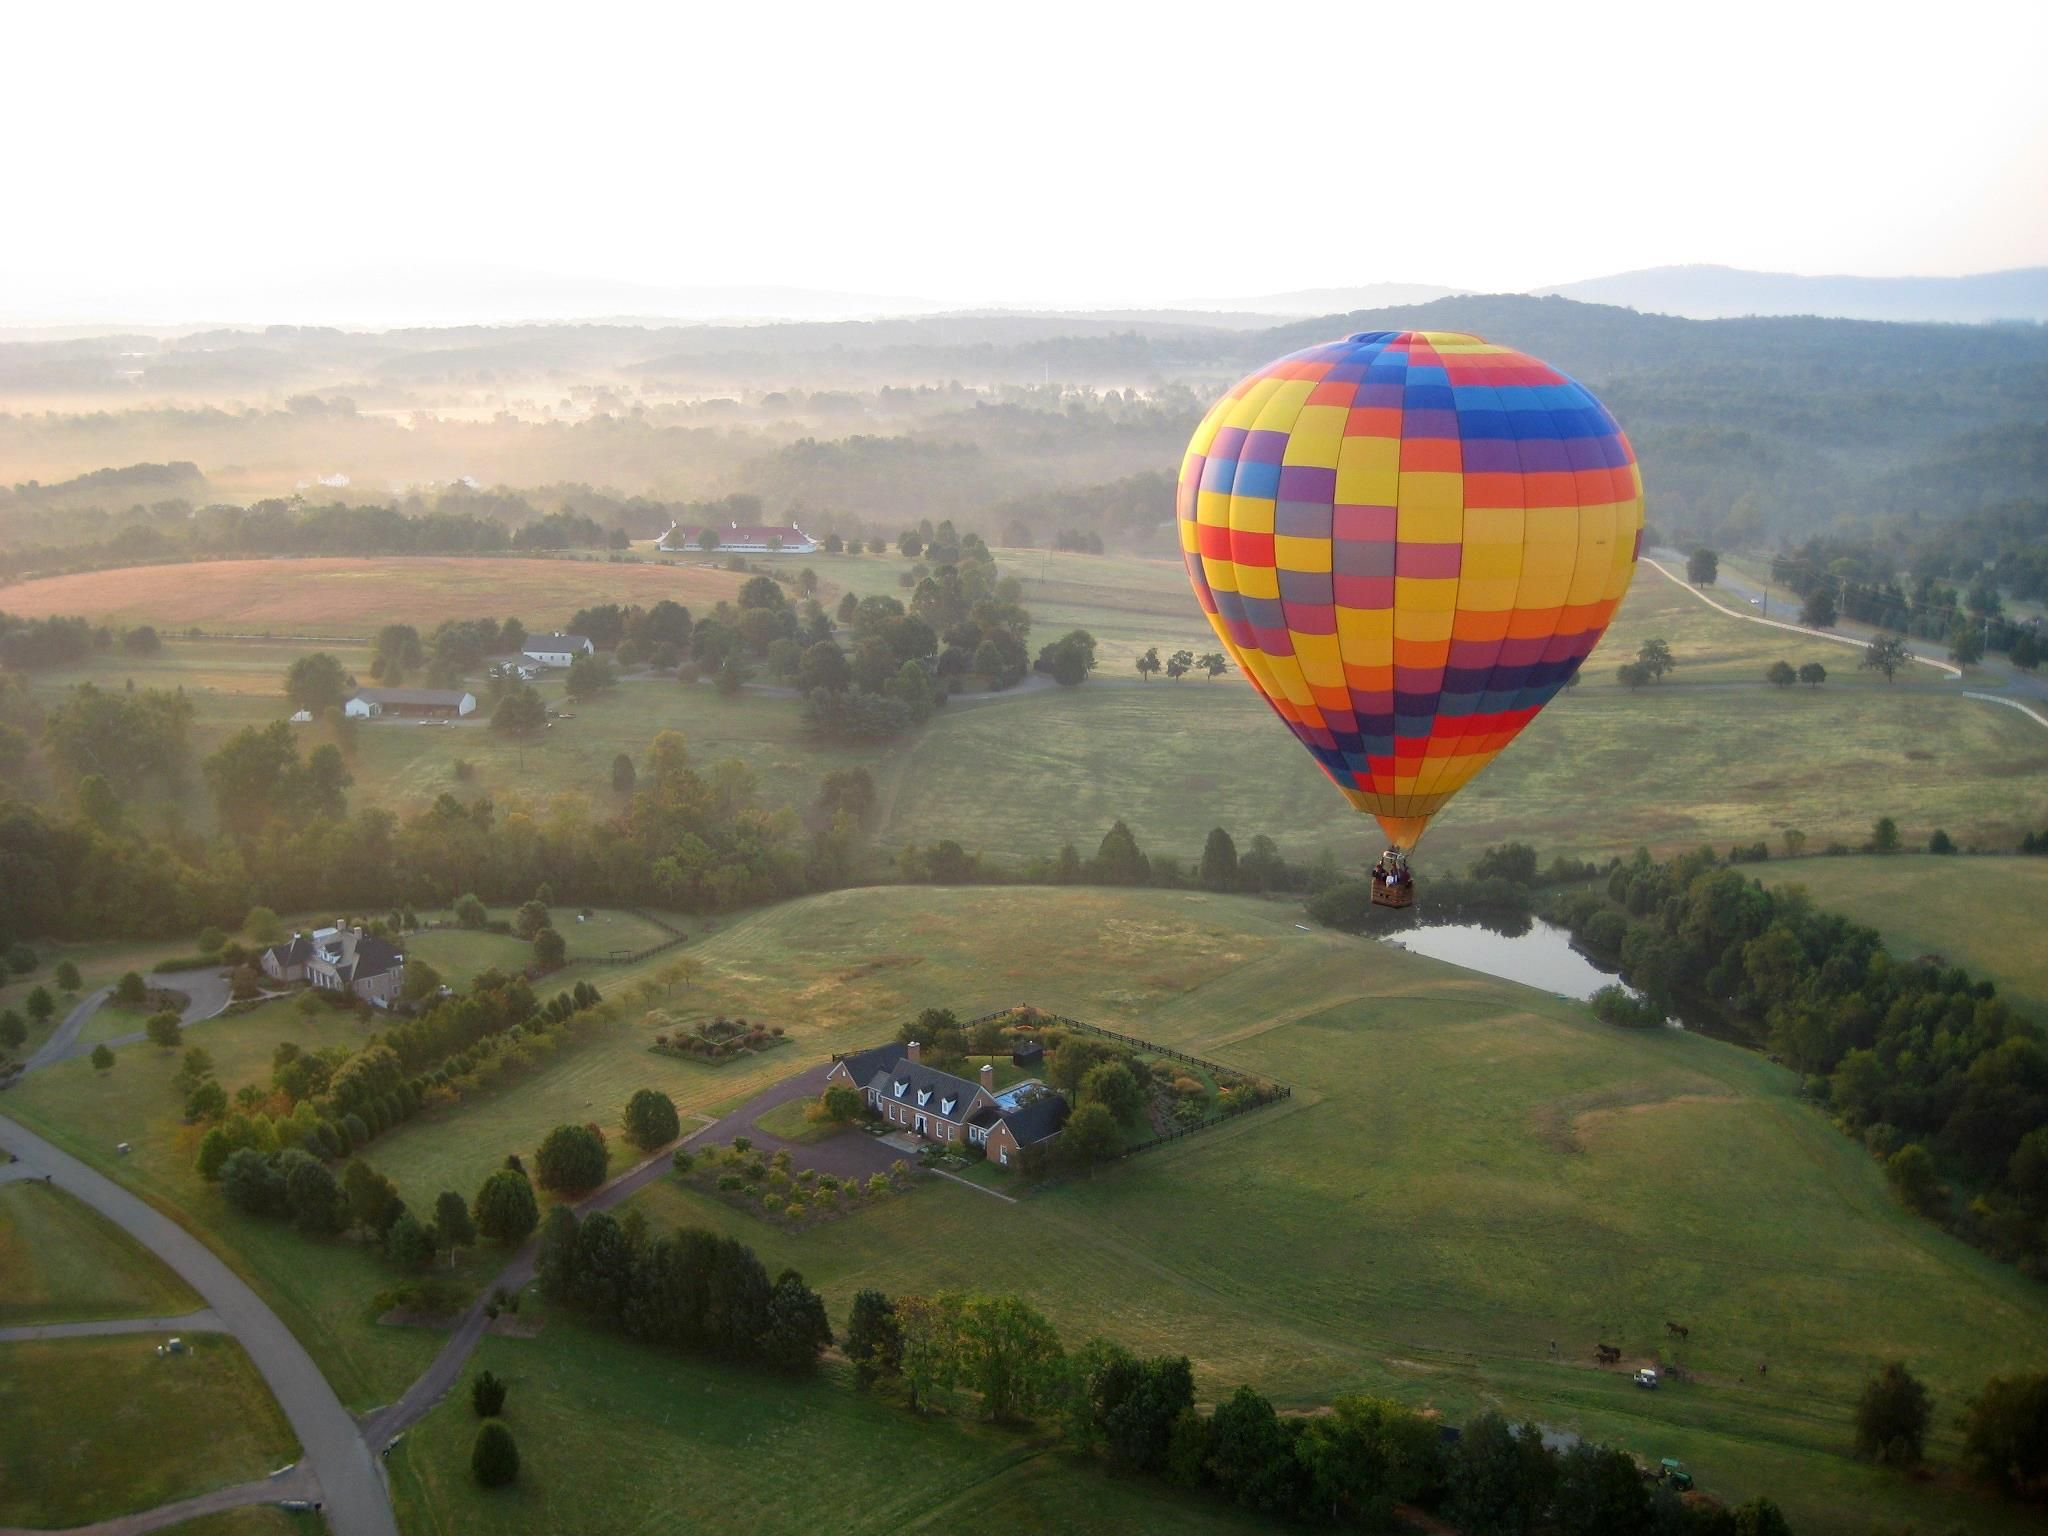 Hot air balloon ride for two one of the many prizes of